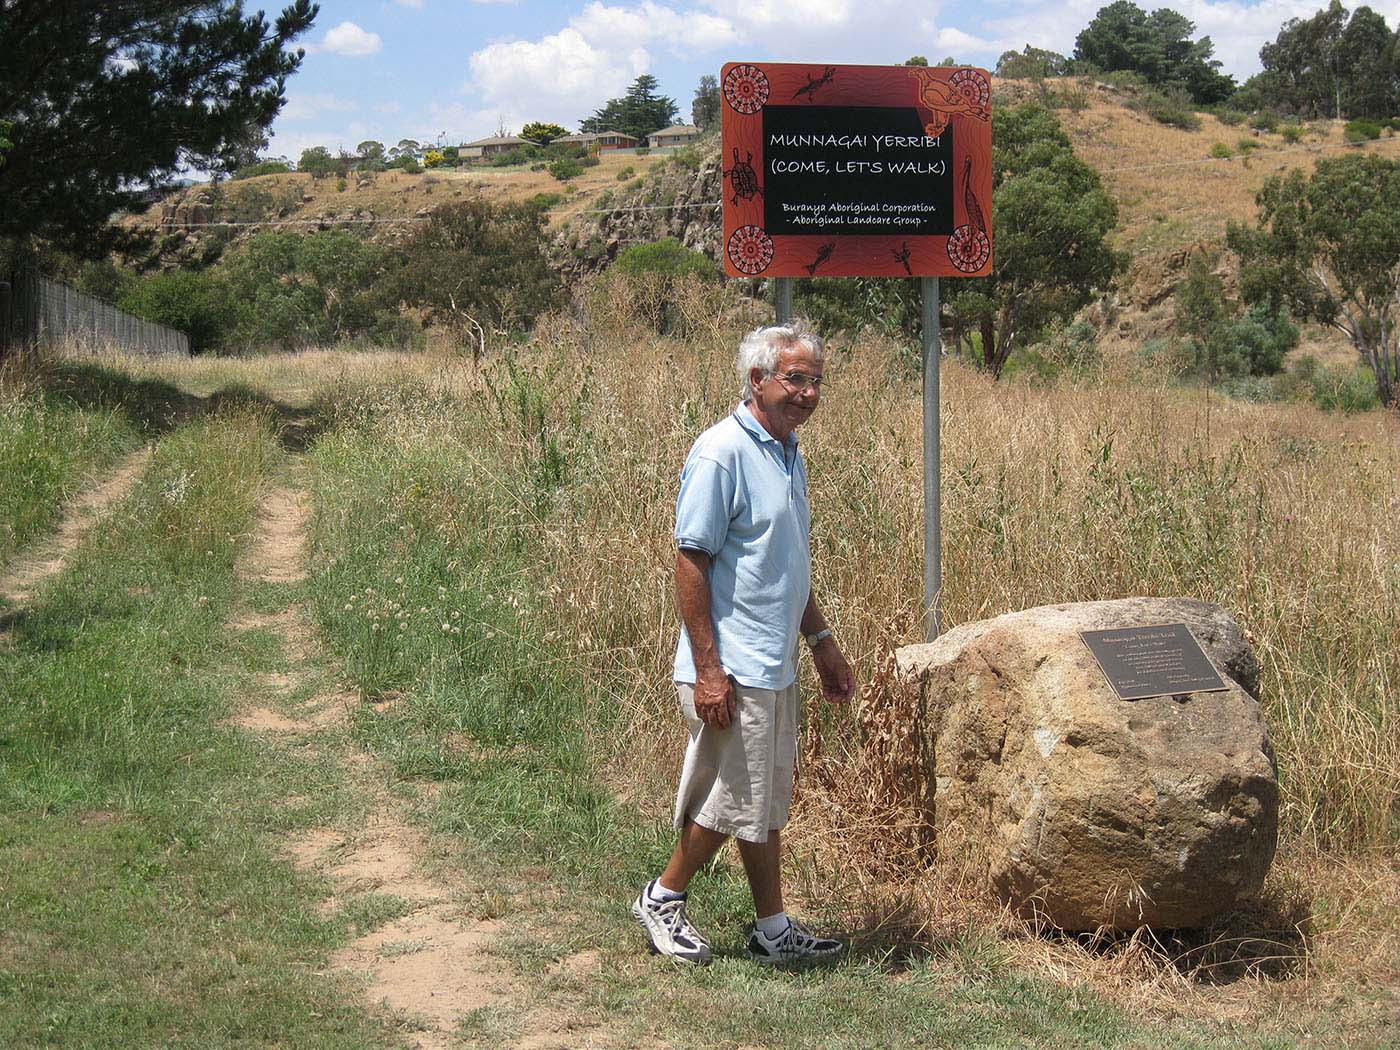 Eric Bell standing beside a dirt track, with a hill rising in the background. He is standing next to large rock with a commemorative plaque and a sign that reads 'MUNNAGAI YERRIBI (COME, LET'S WALK). Buranya Aboriginal Corporation - Aboriginal Landcare Group -'